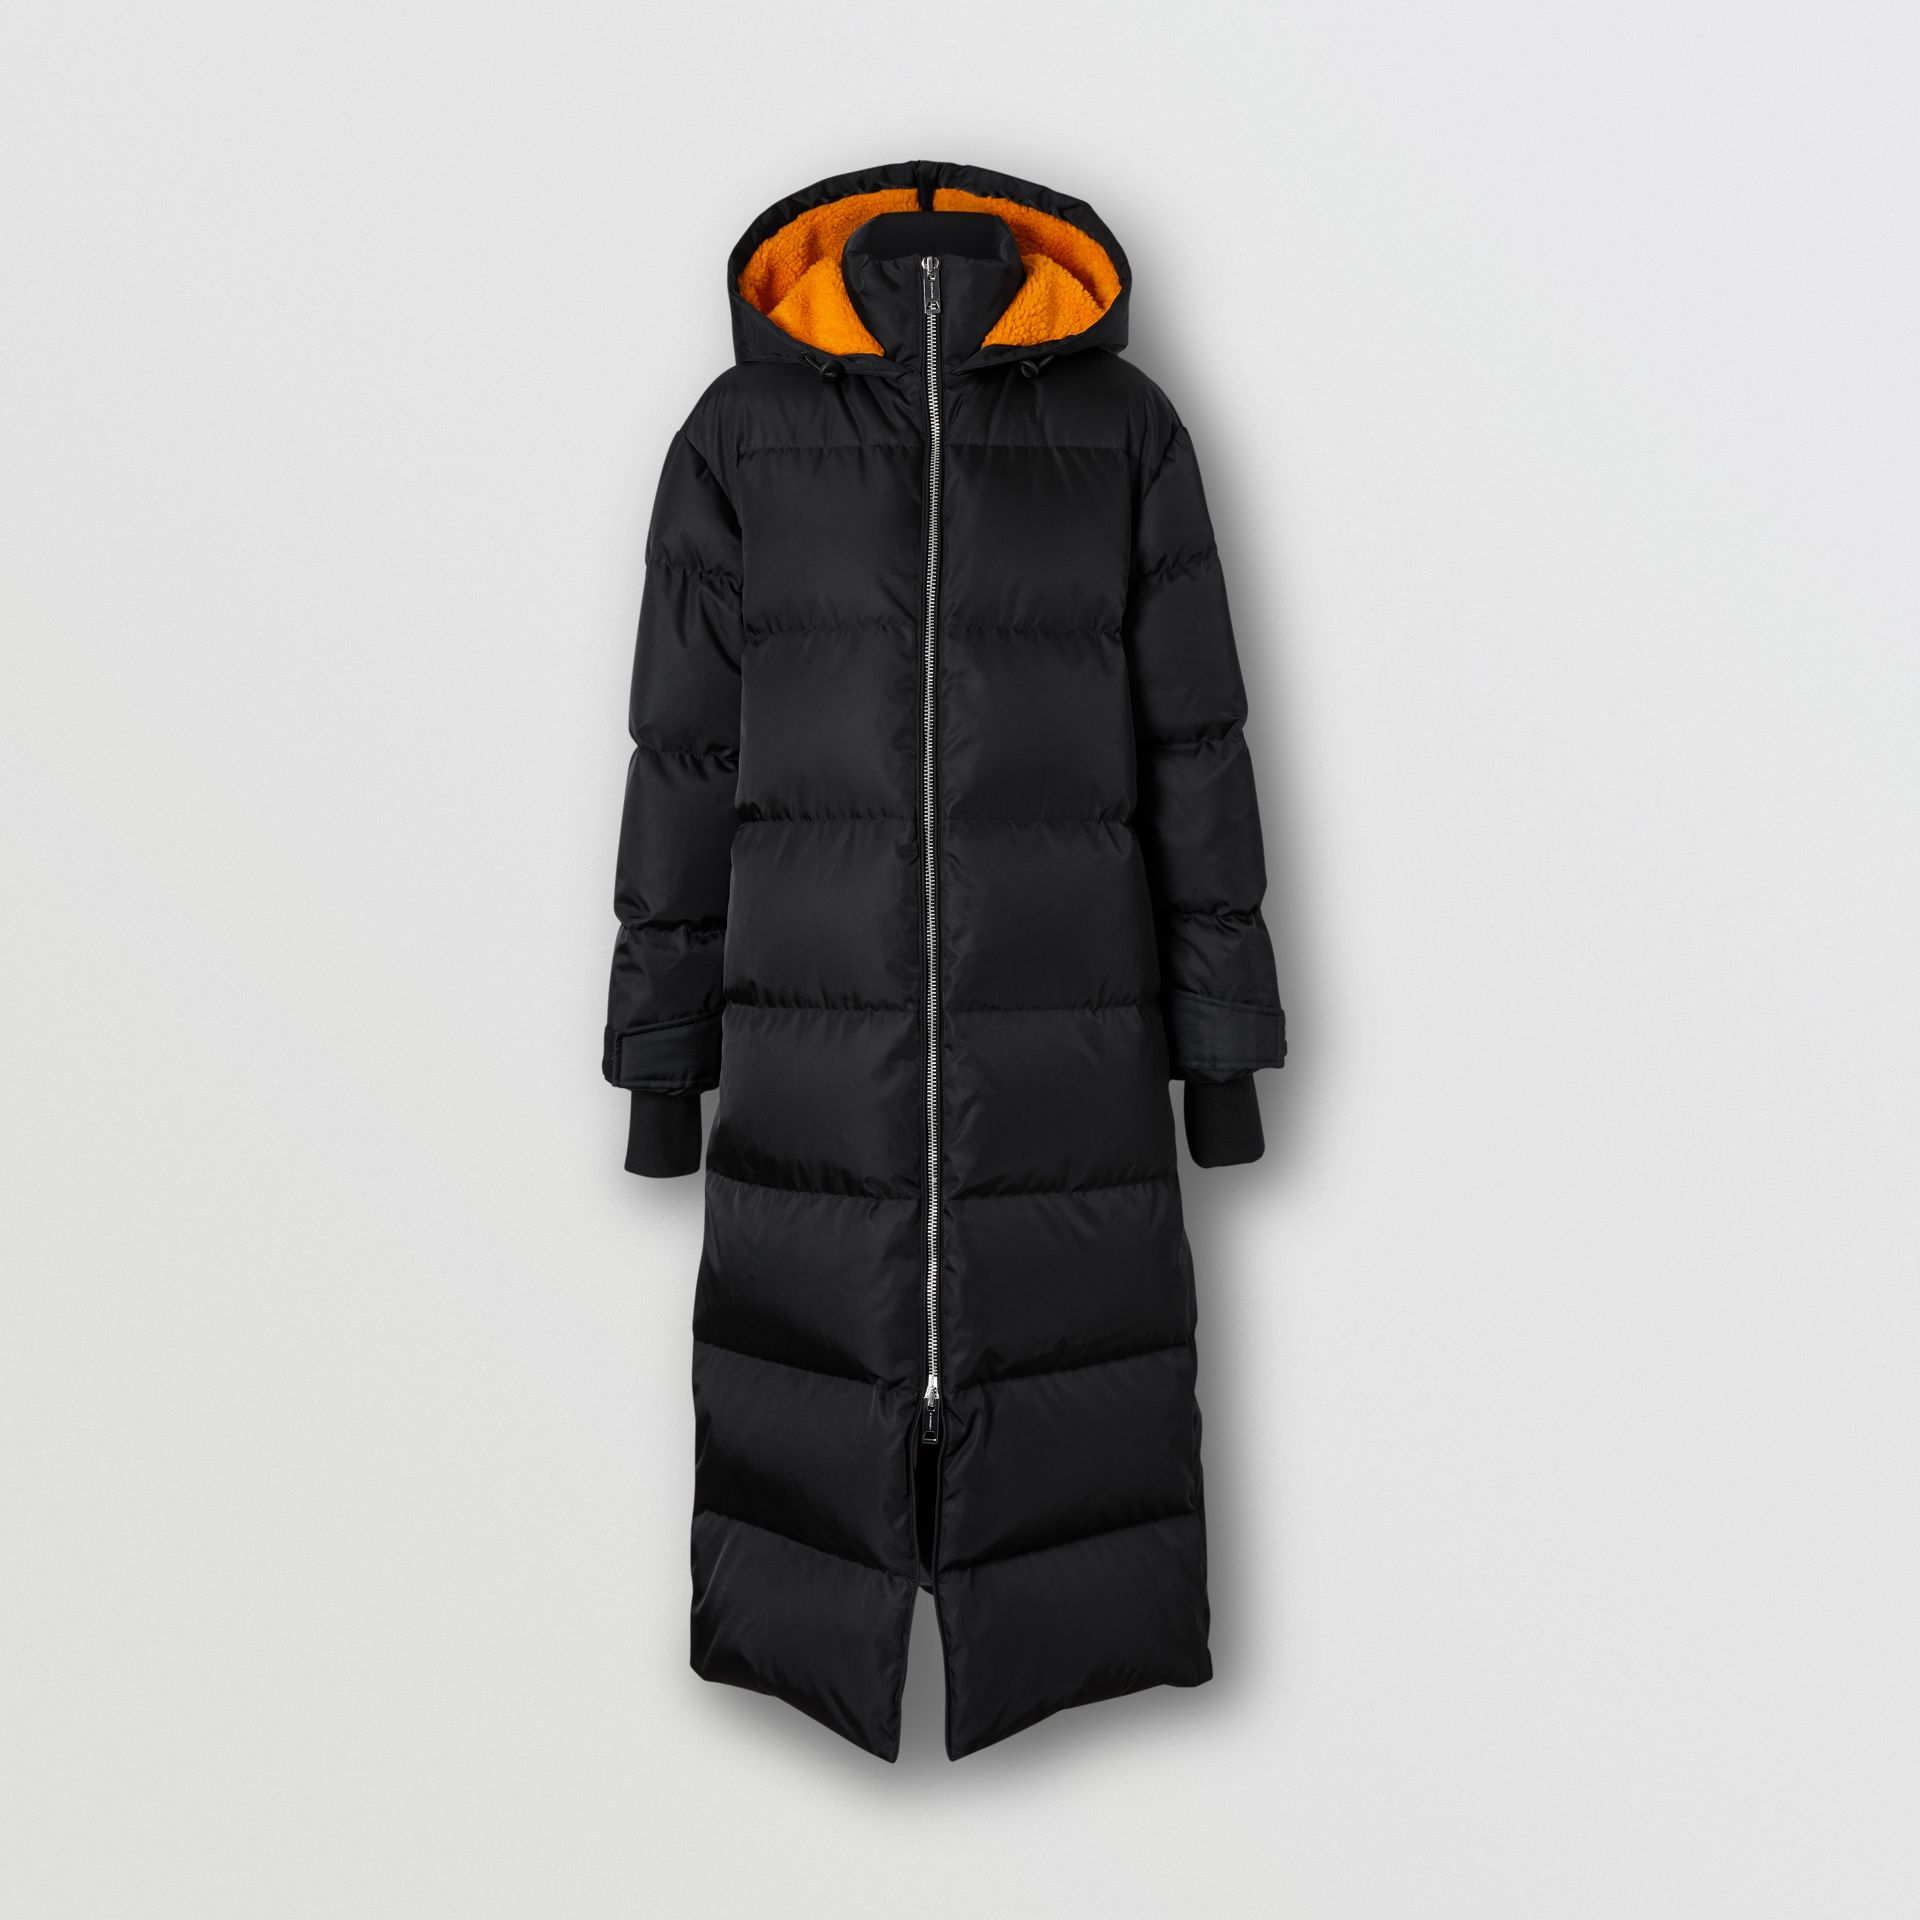 Logo Detail ECONYL® Puffer Coat in Black/orange - Women | Burberry United States - gallery image 3